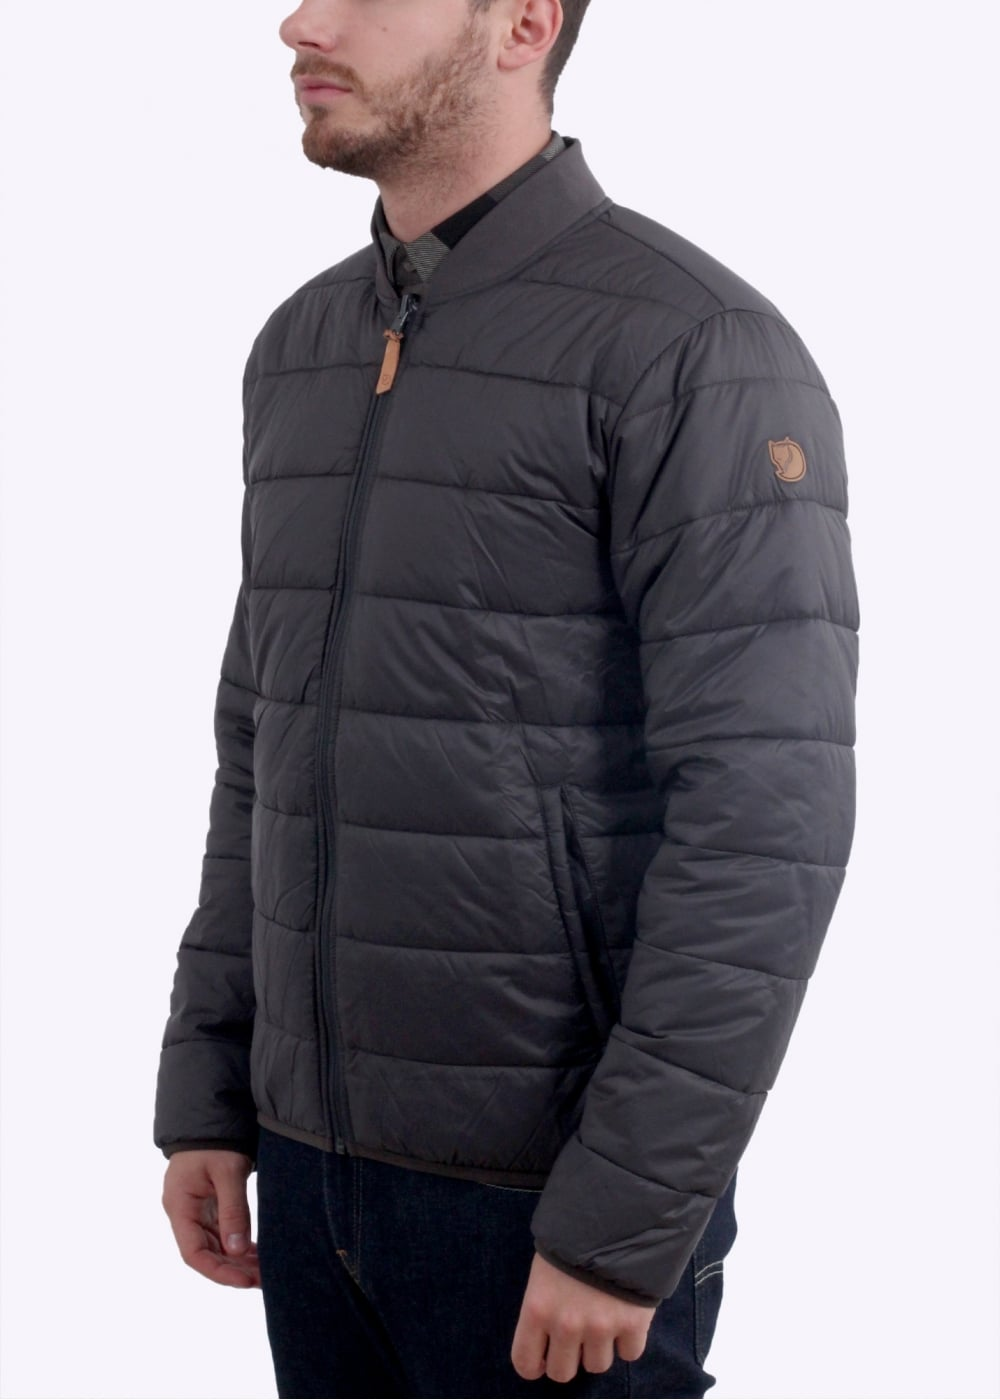 Fjallraven Ovik 3 in 1 Jacket Black